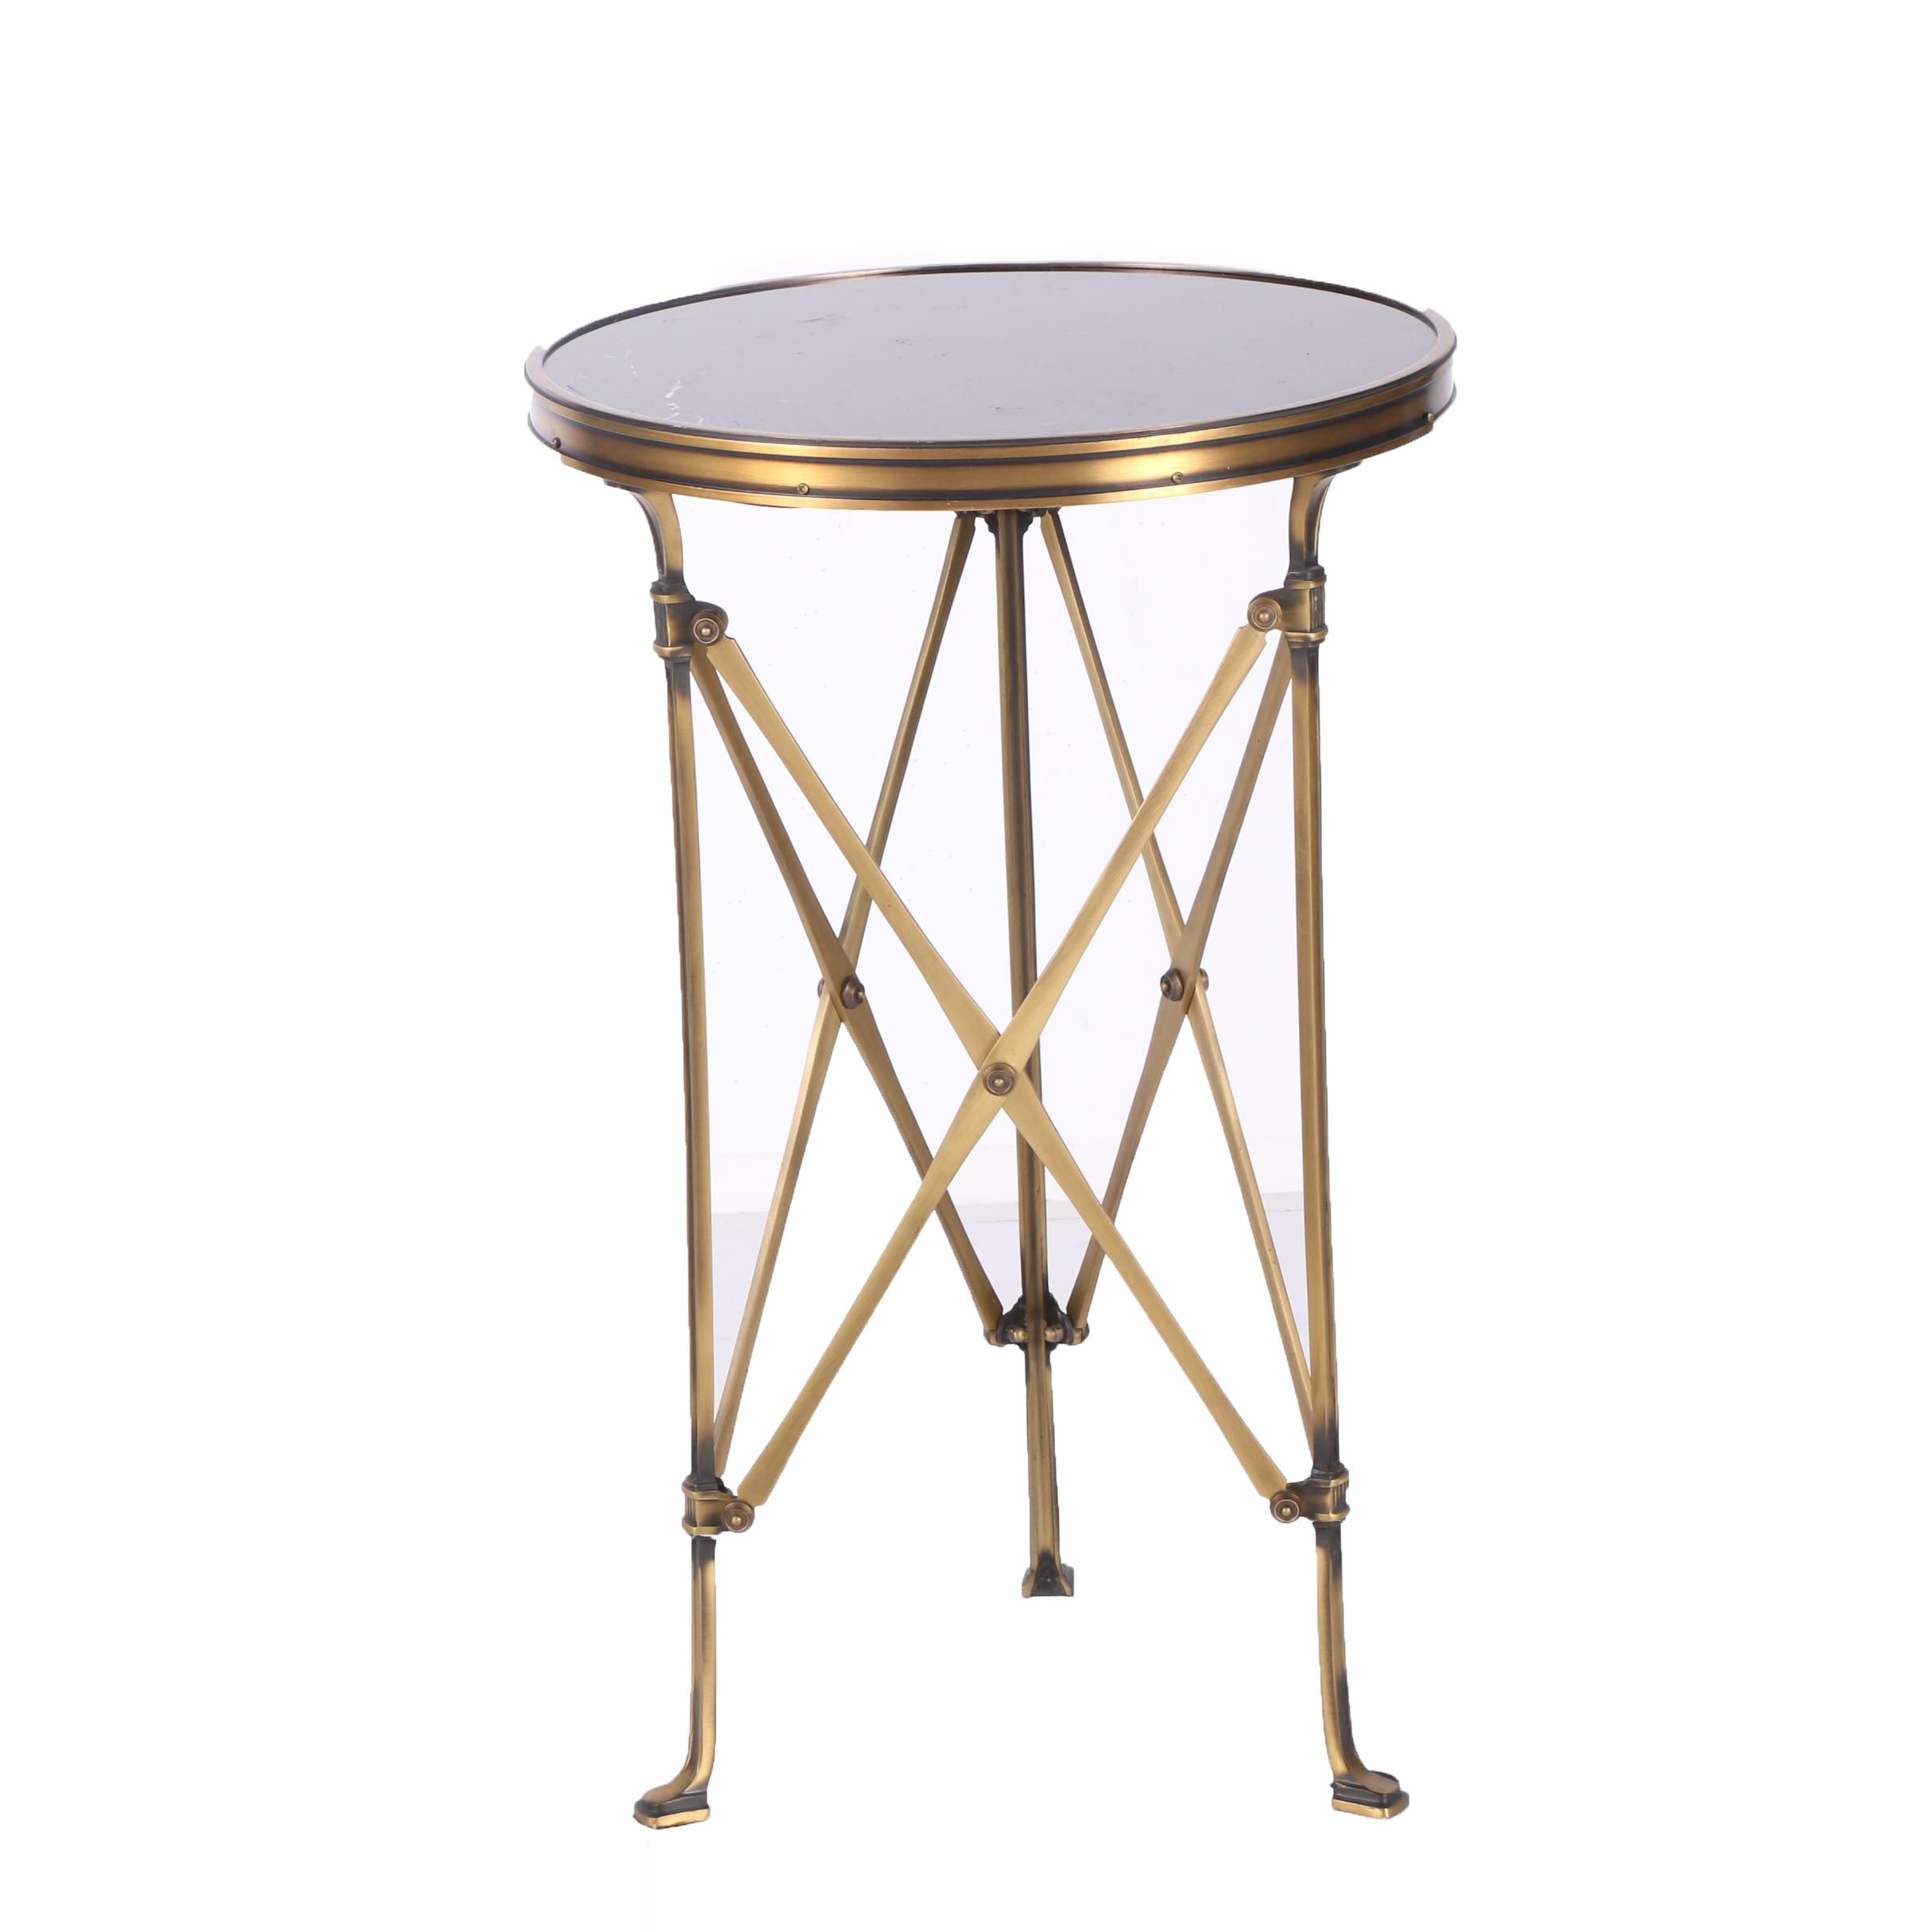 Brass Accent Table with Circular Glass Top